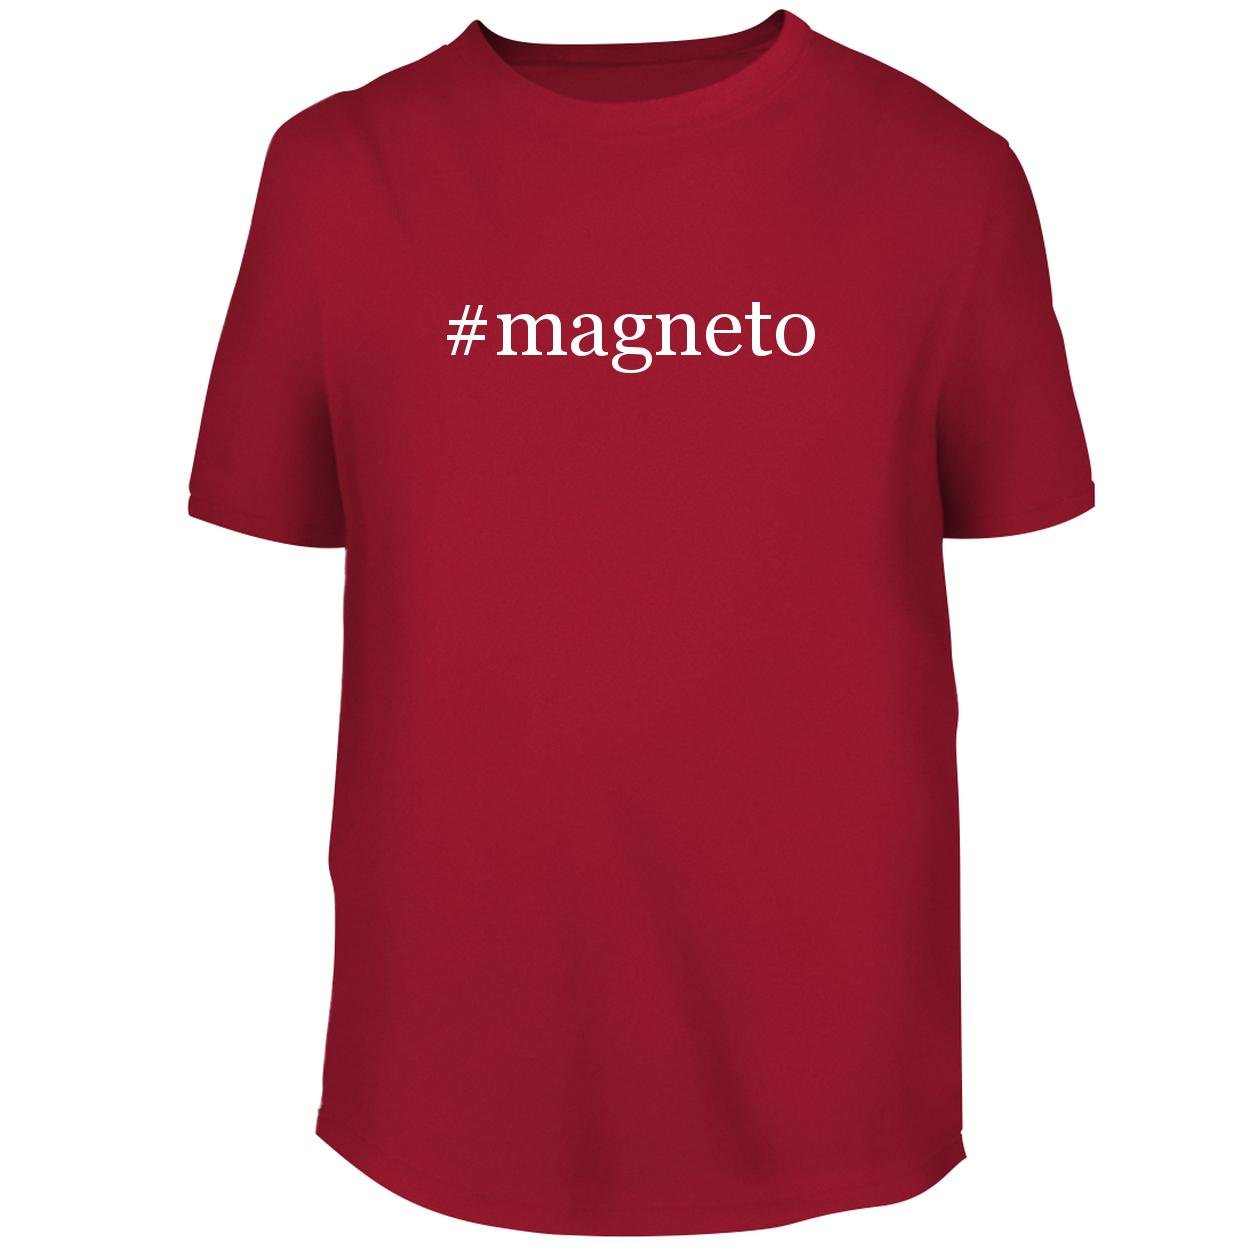 BH Cool Designs #Magneto - Men's Graphic Tee, Red, XX-Large